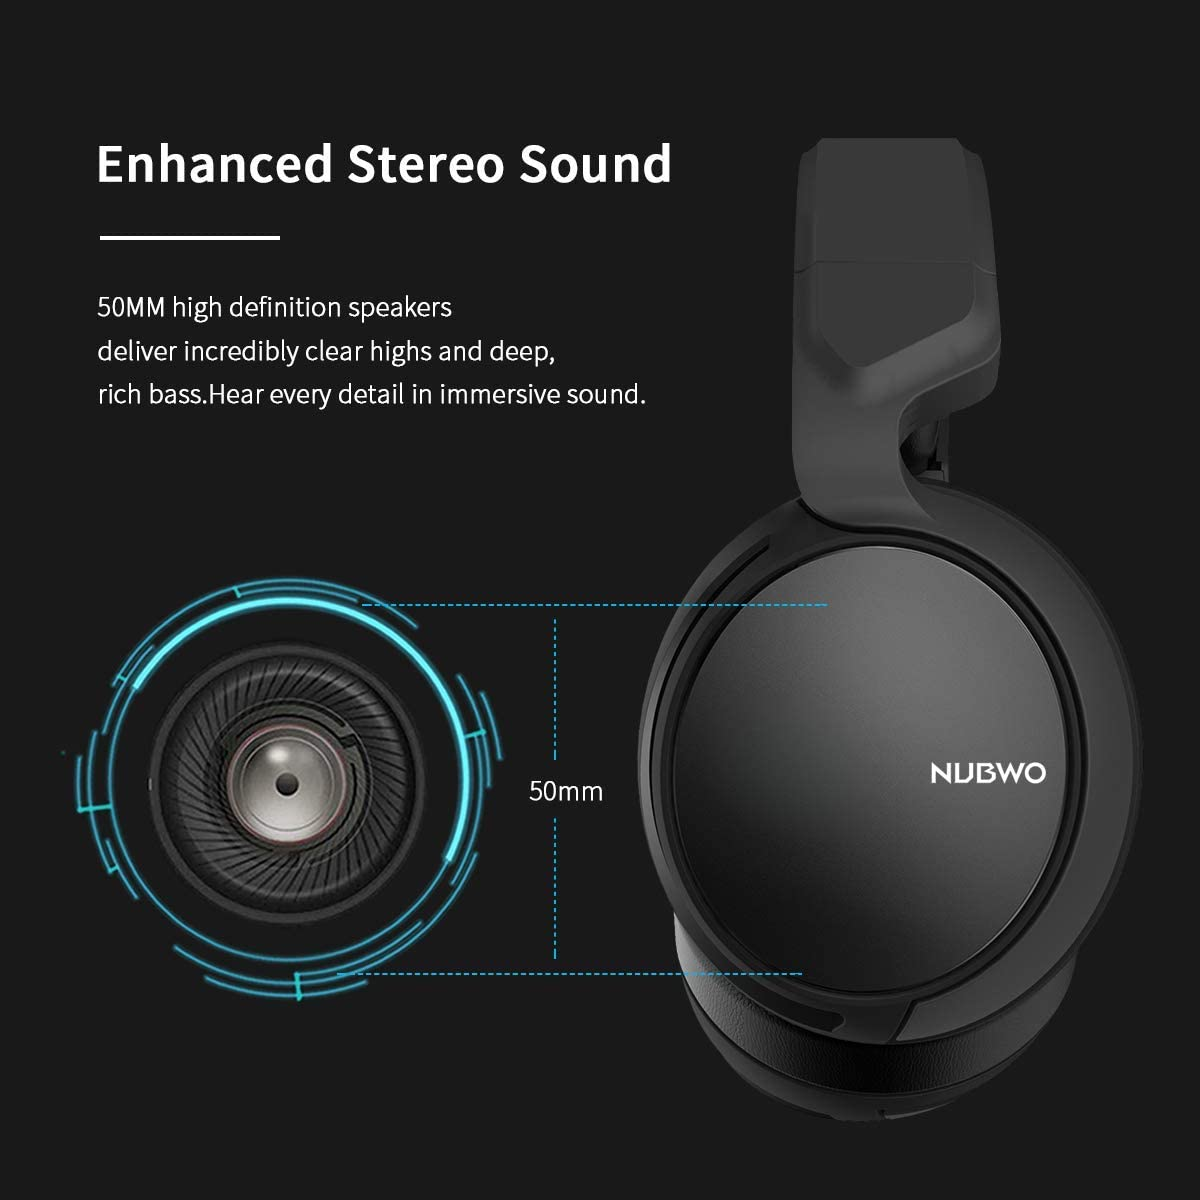 NUBWO N12 Surround Sound Stereo Gaming Headset with Mic for PlayStation 4, PS4, Xbox One Controller, Nintendo Switch Lite, PC, Laptop, Android & IOS ...